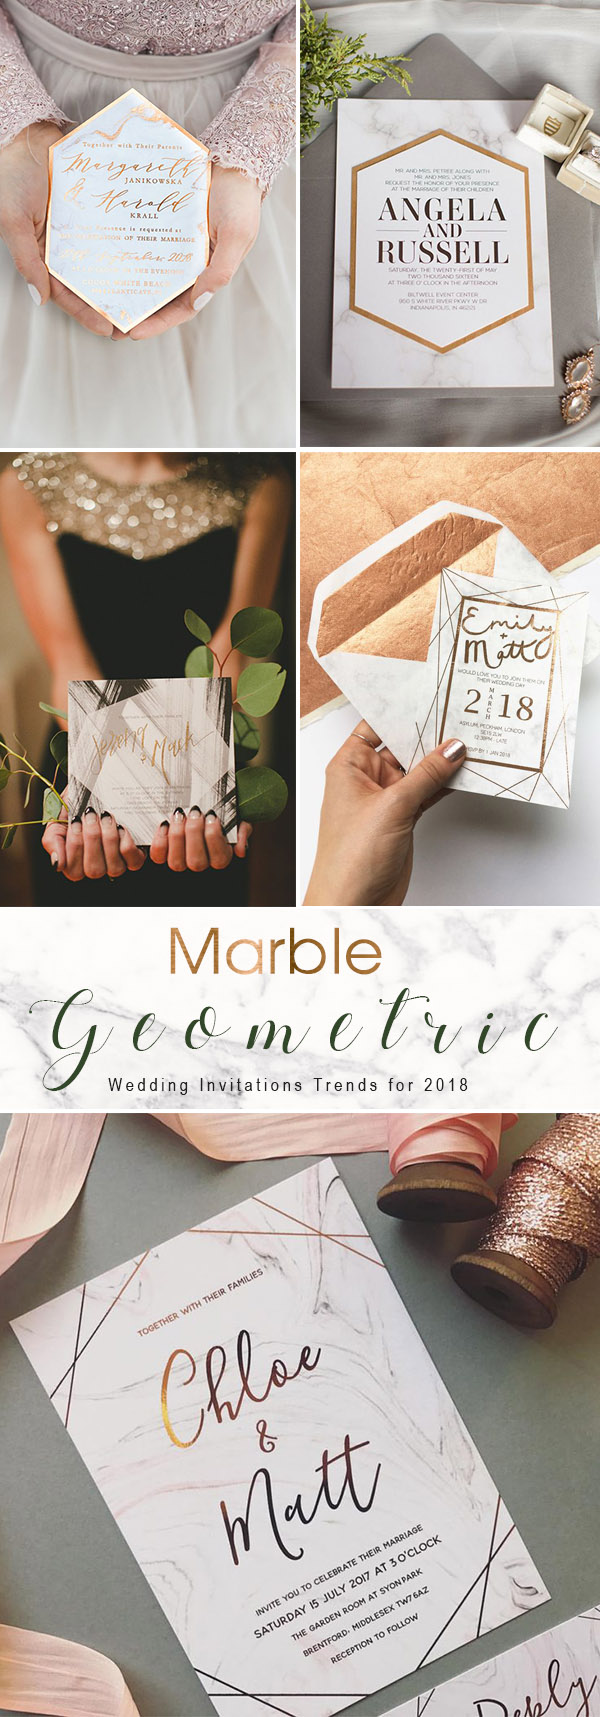 Marble Inspired Geometric Modern Wedding Invitation Ideas